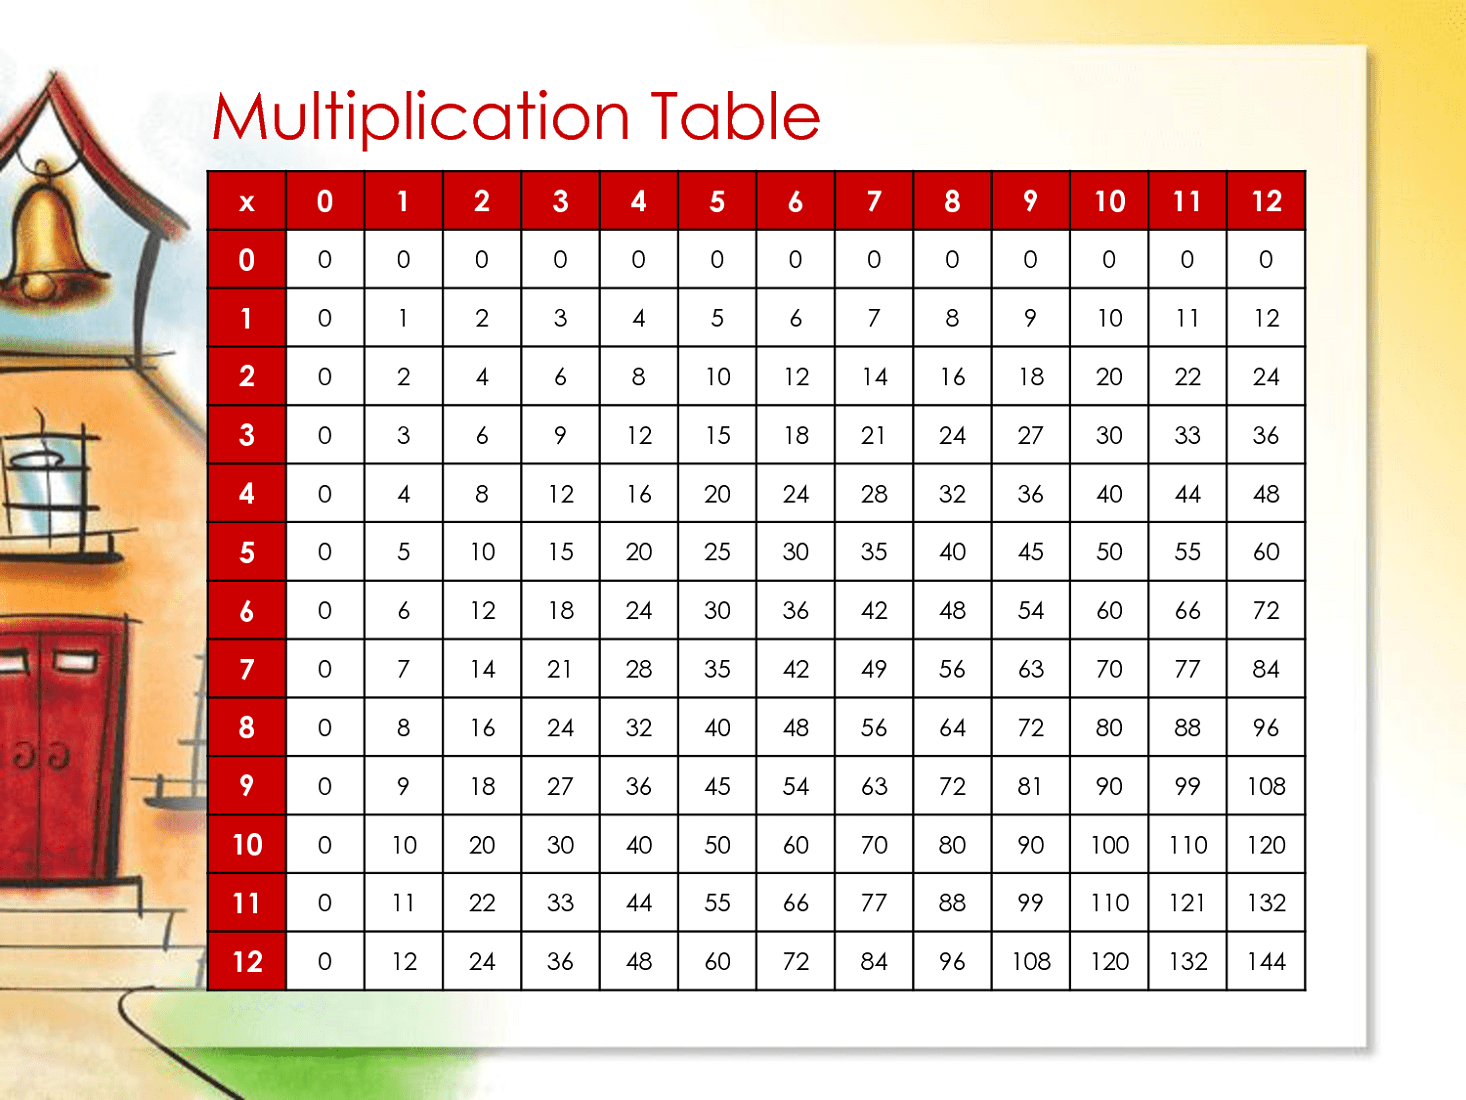 Blank Multiplication Table 1 10 Printable